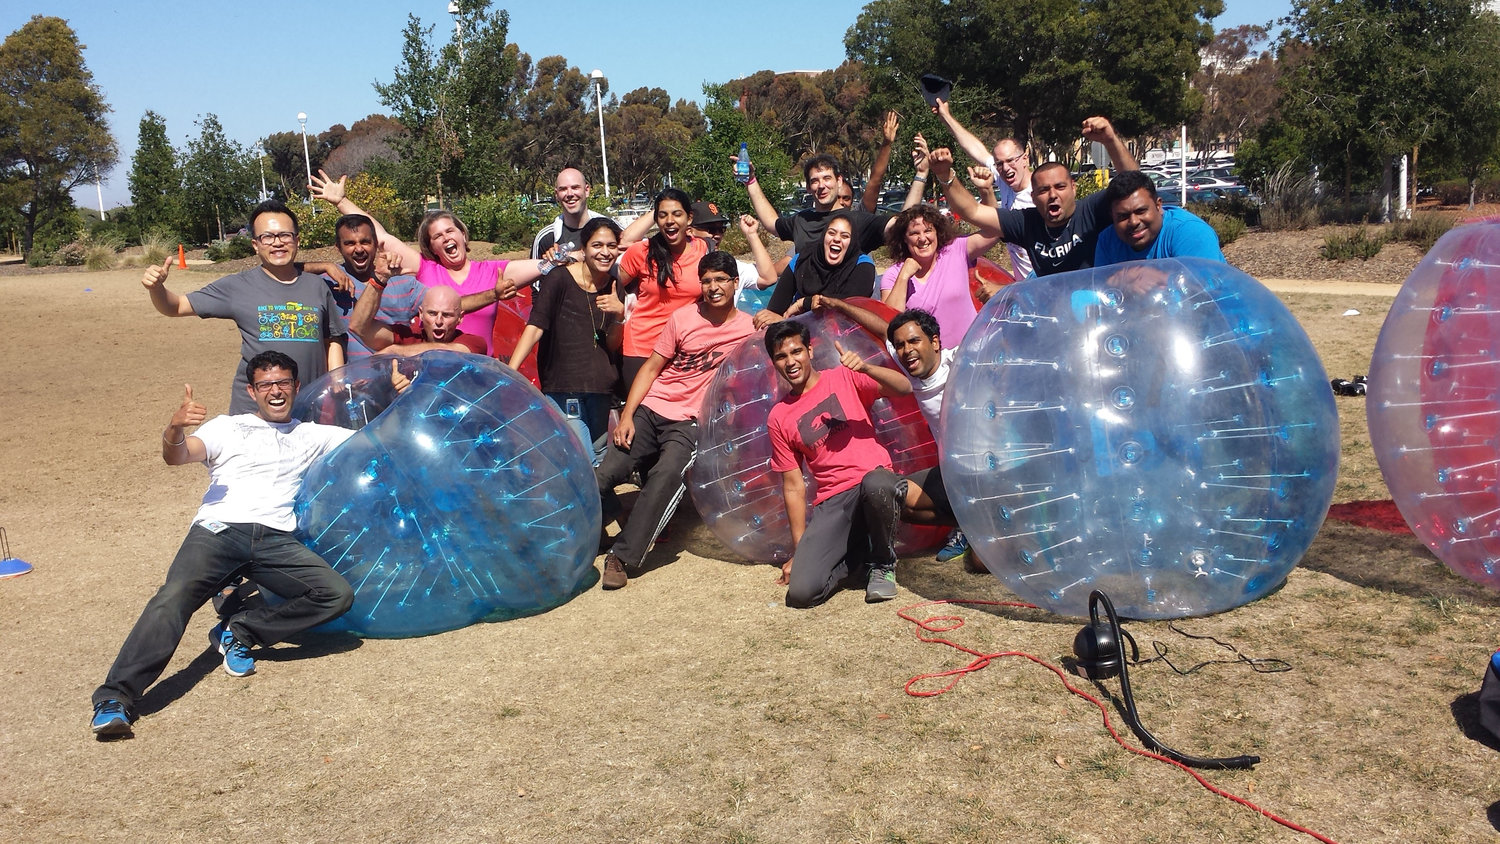 Work+Party+Bubble+Soccer+game.jpeg